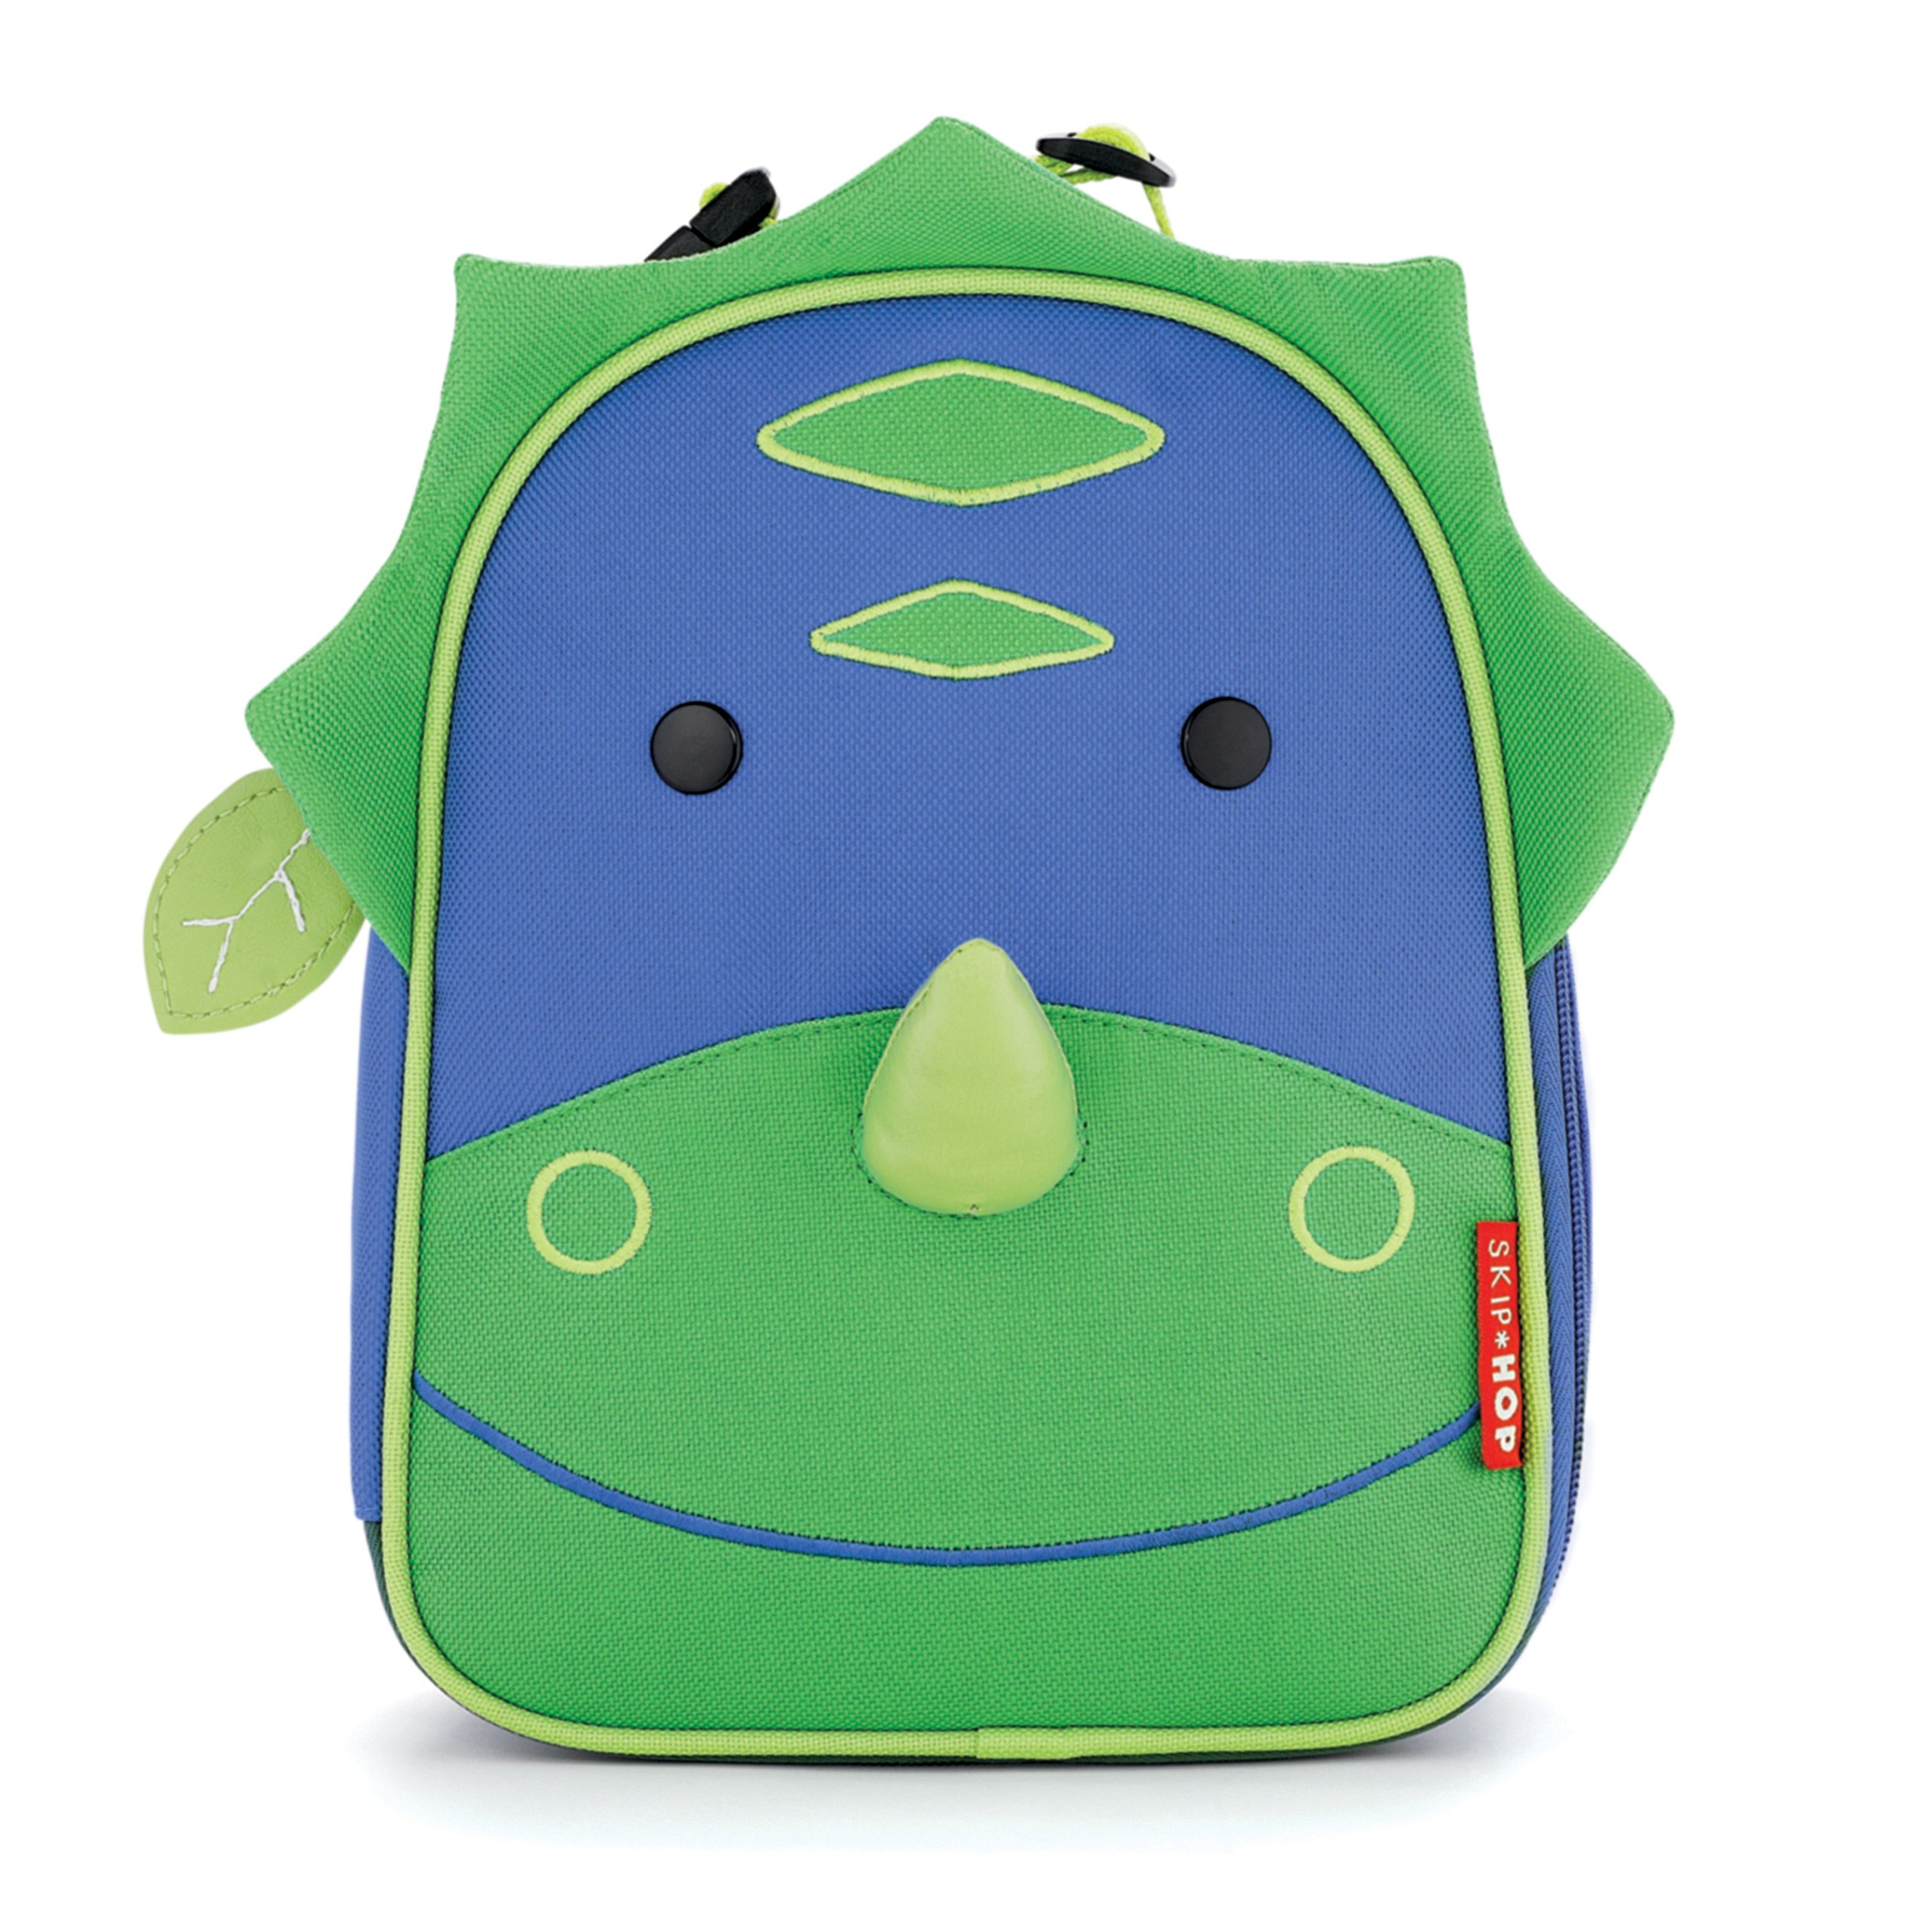 Skip Hop Zoo Kids Insulated Lunch Box, Dakota Dinosaur, 9''x3.25''x7.5'', Green